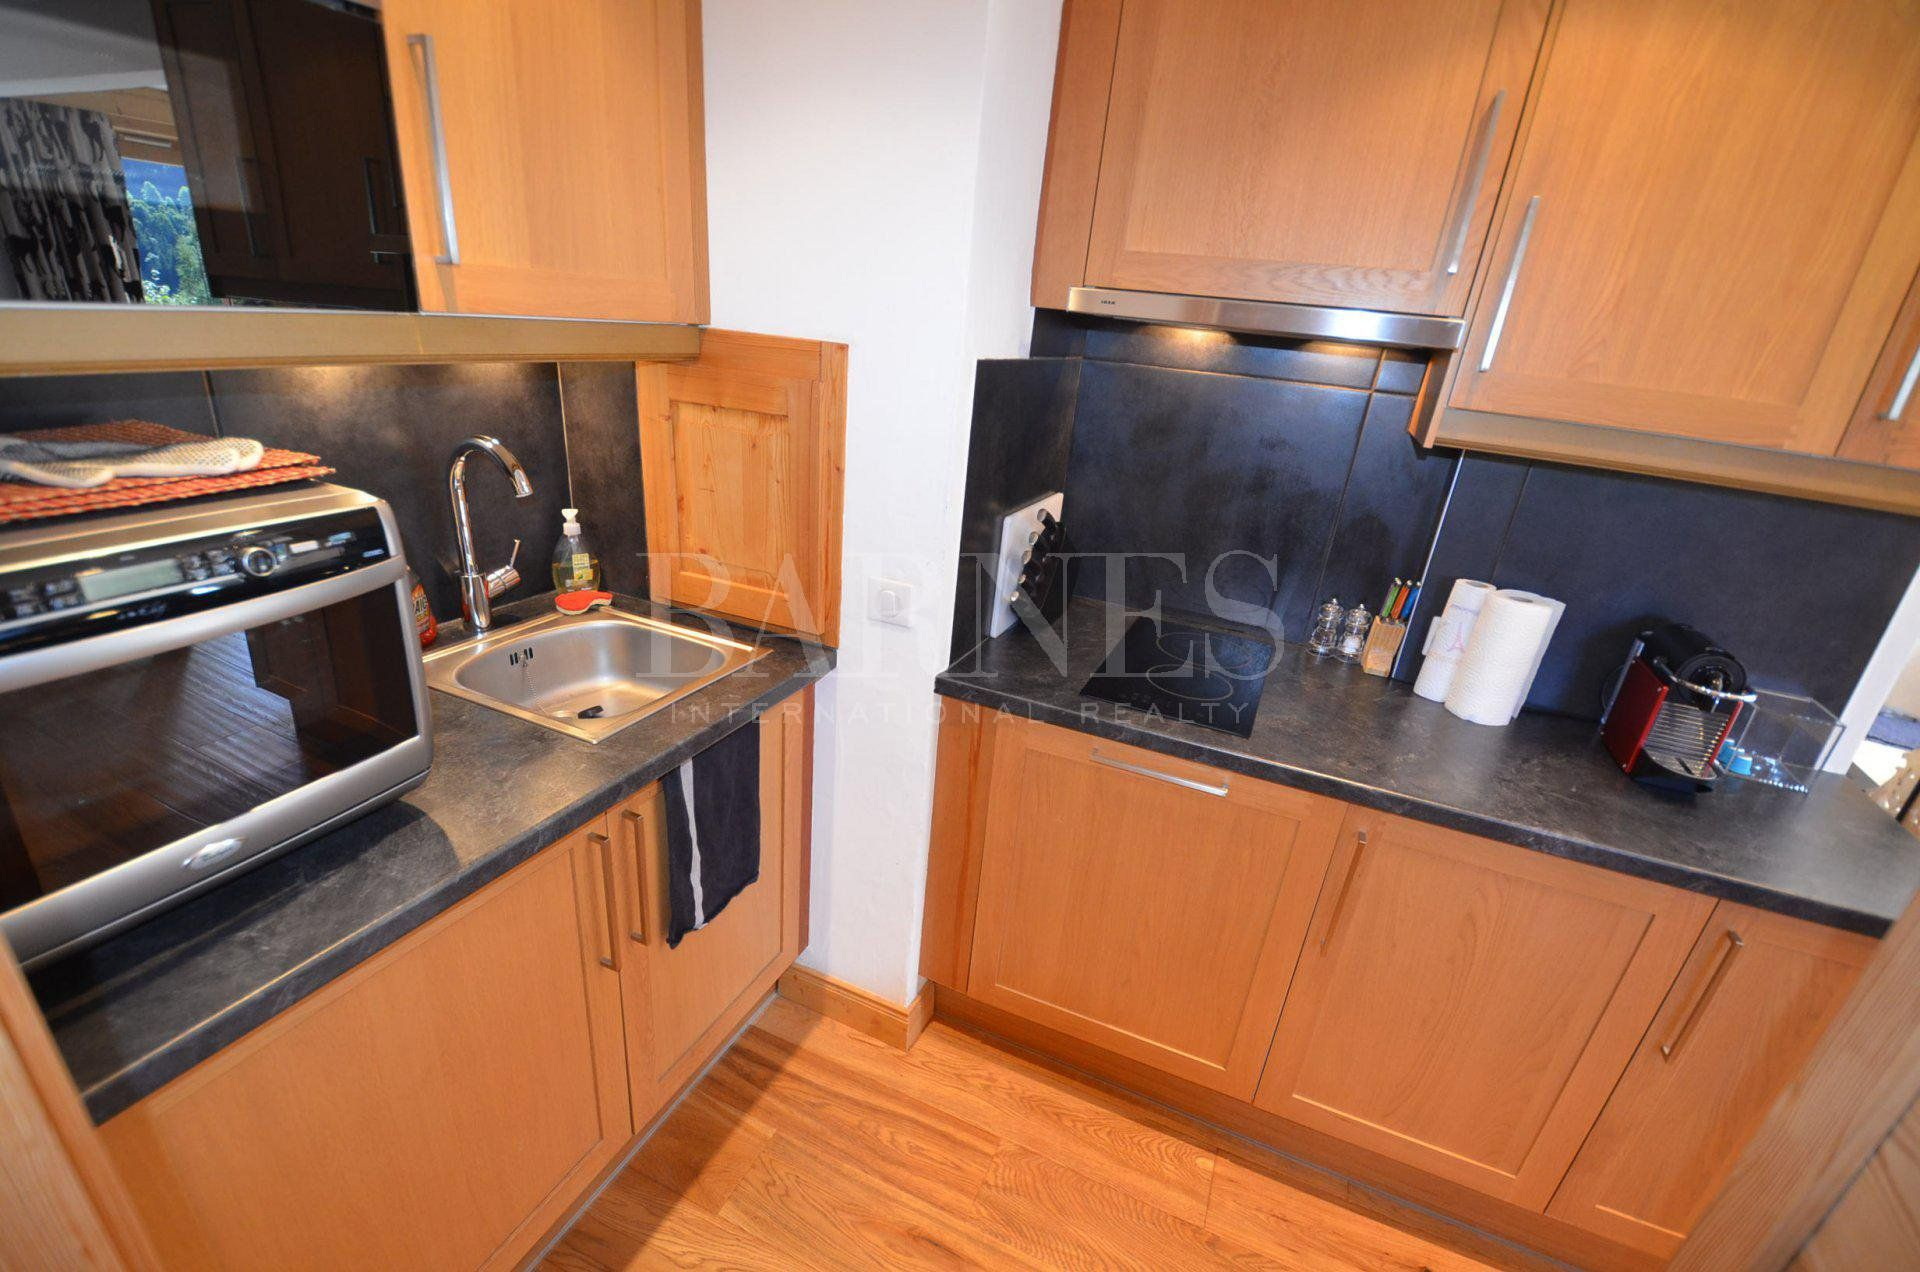 Lovely 2 bedrooms apartment completly renovated